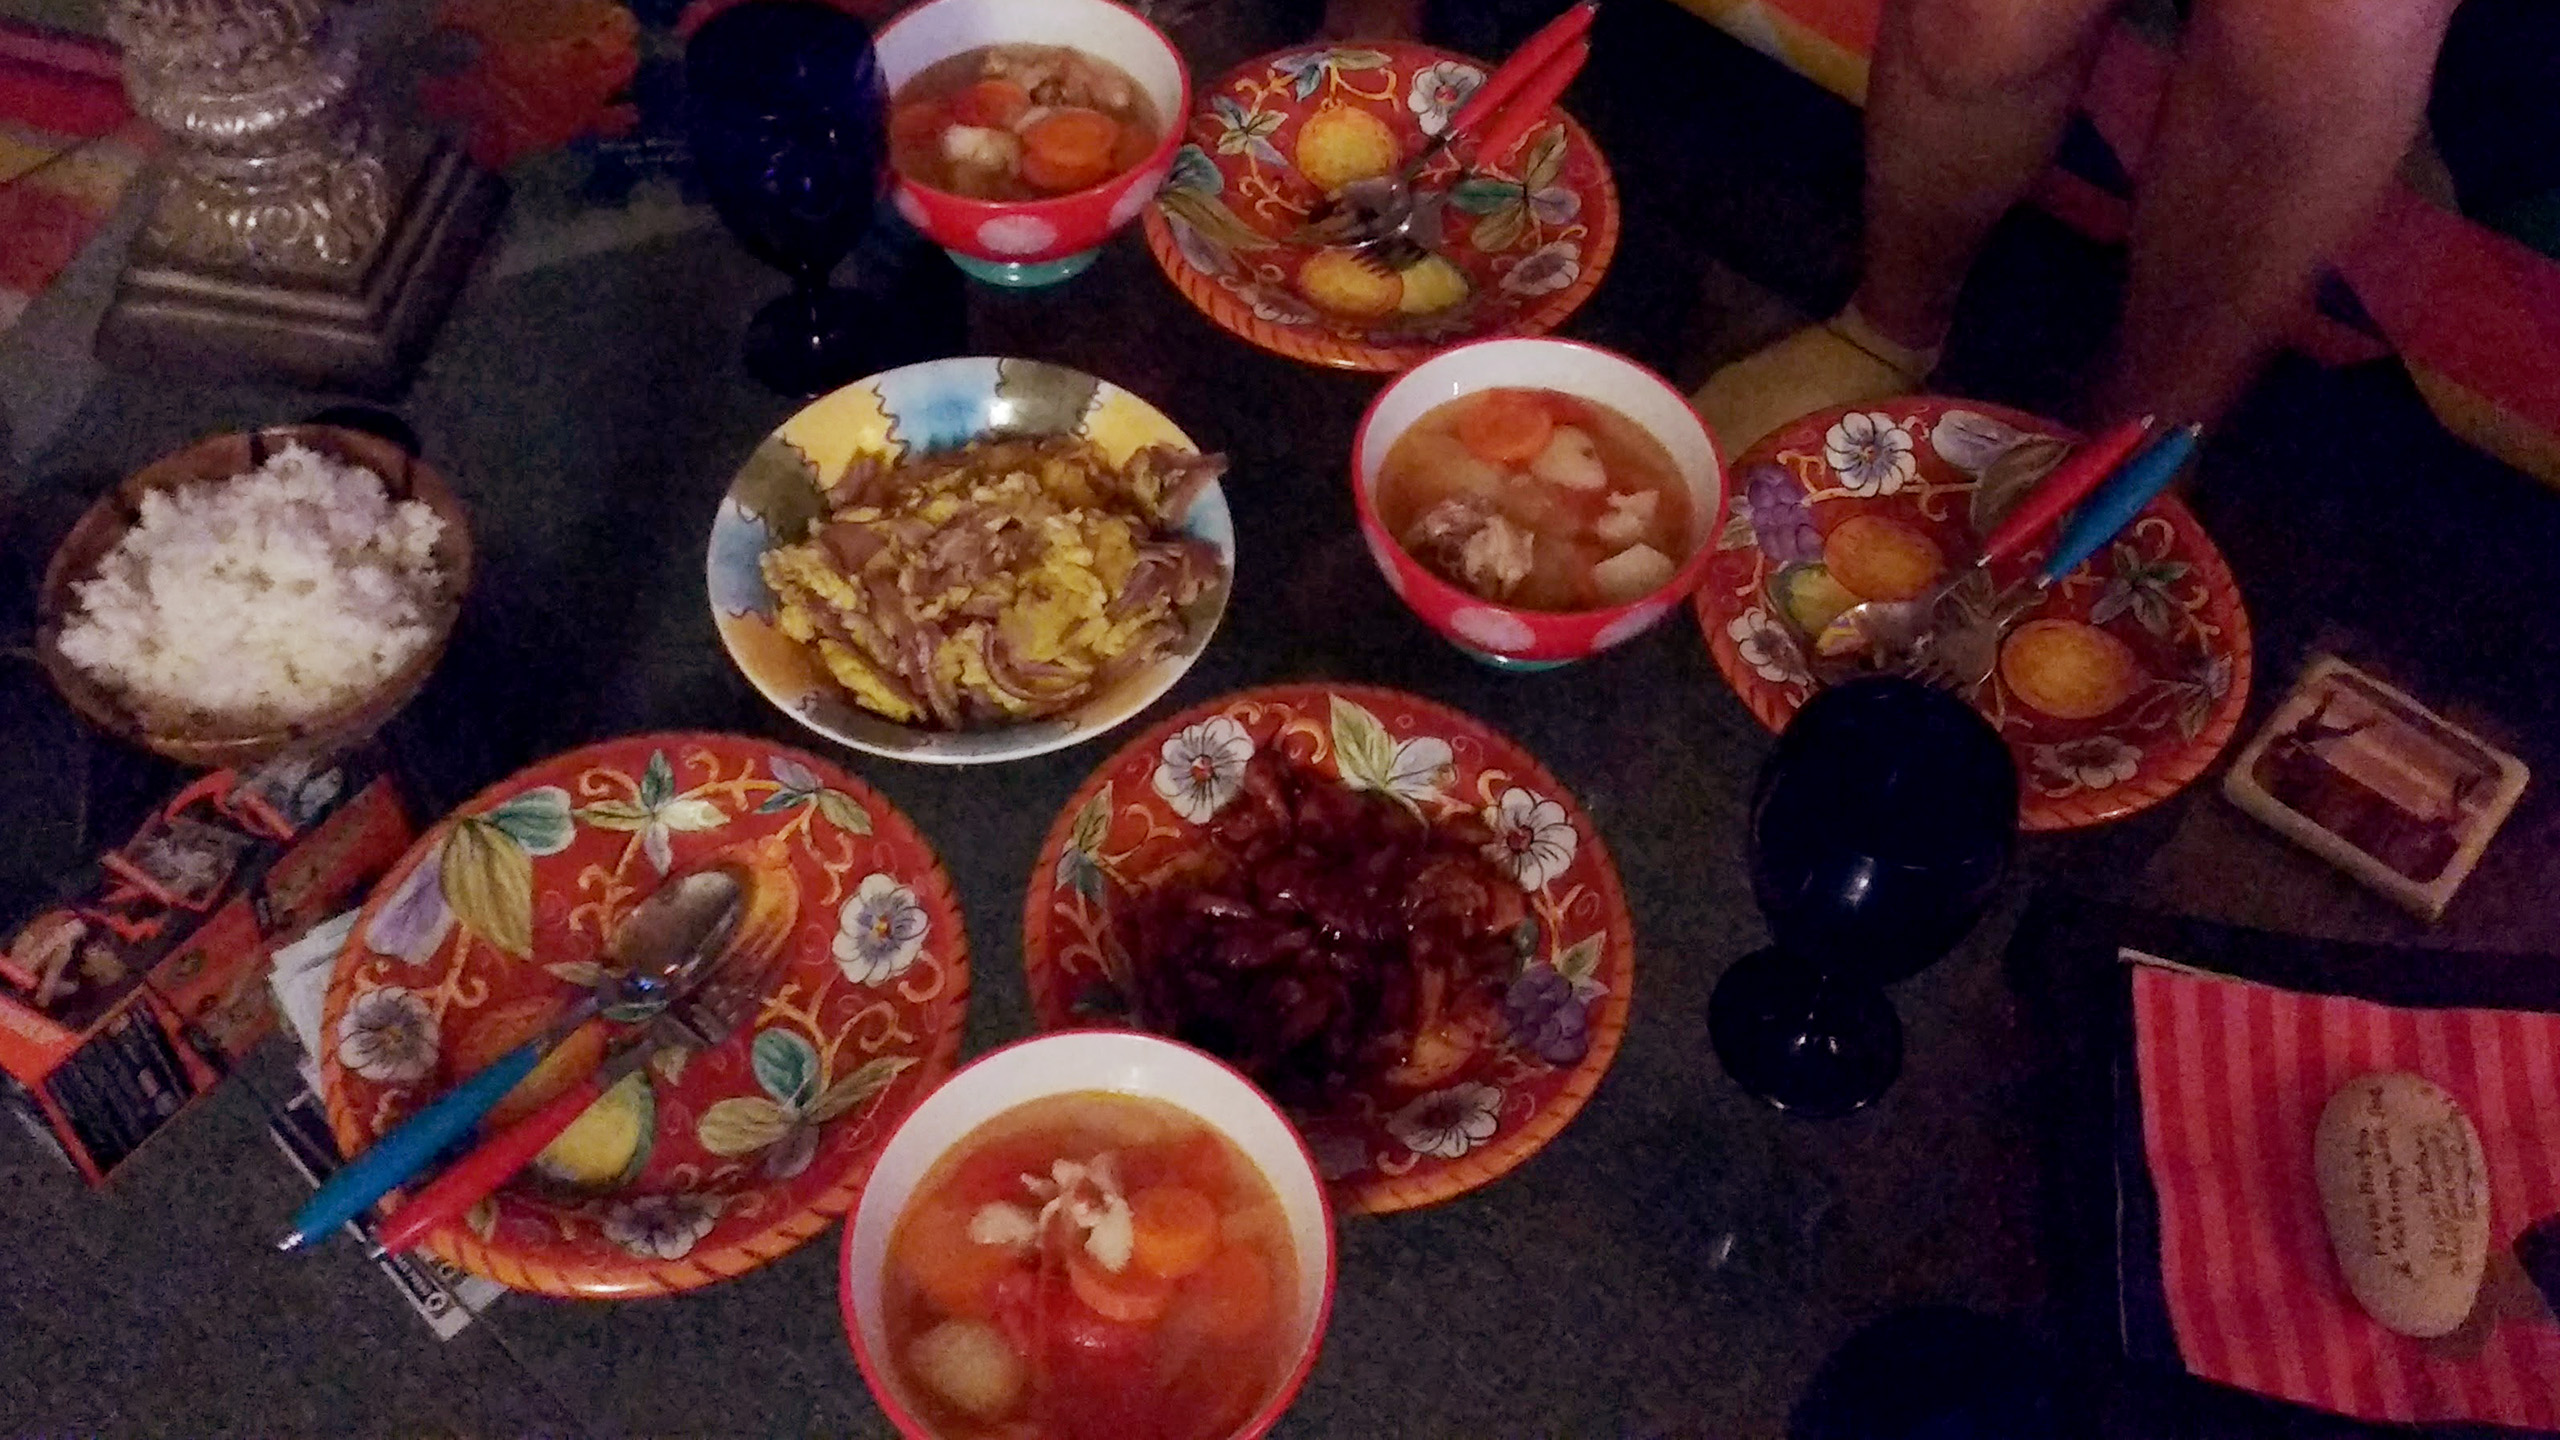 a table filled with different food dishes